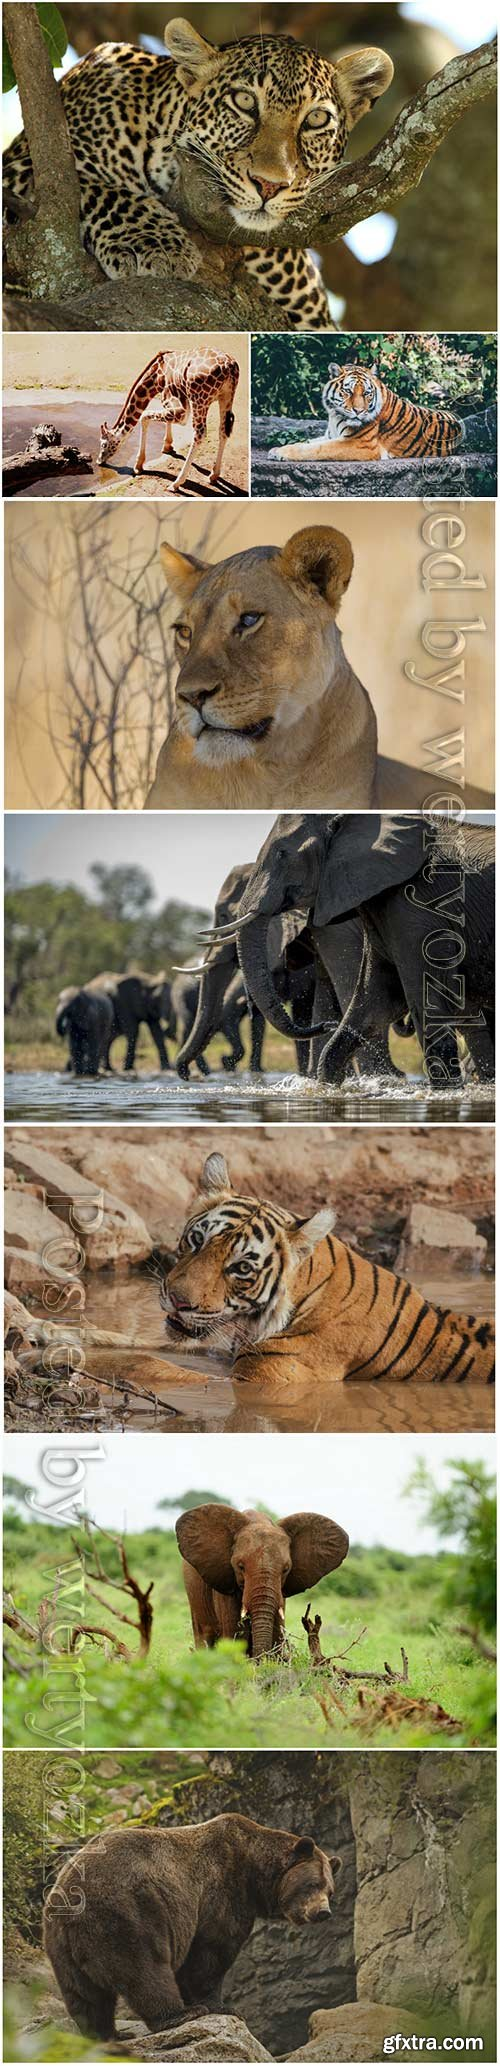 Animals, tiger, elephant, leopard, bear